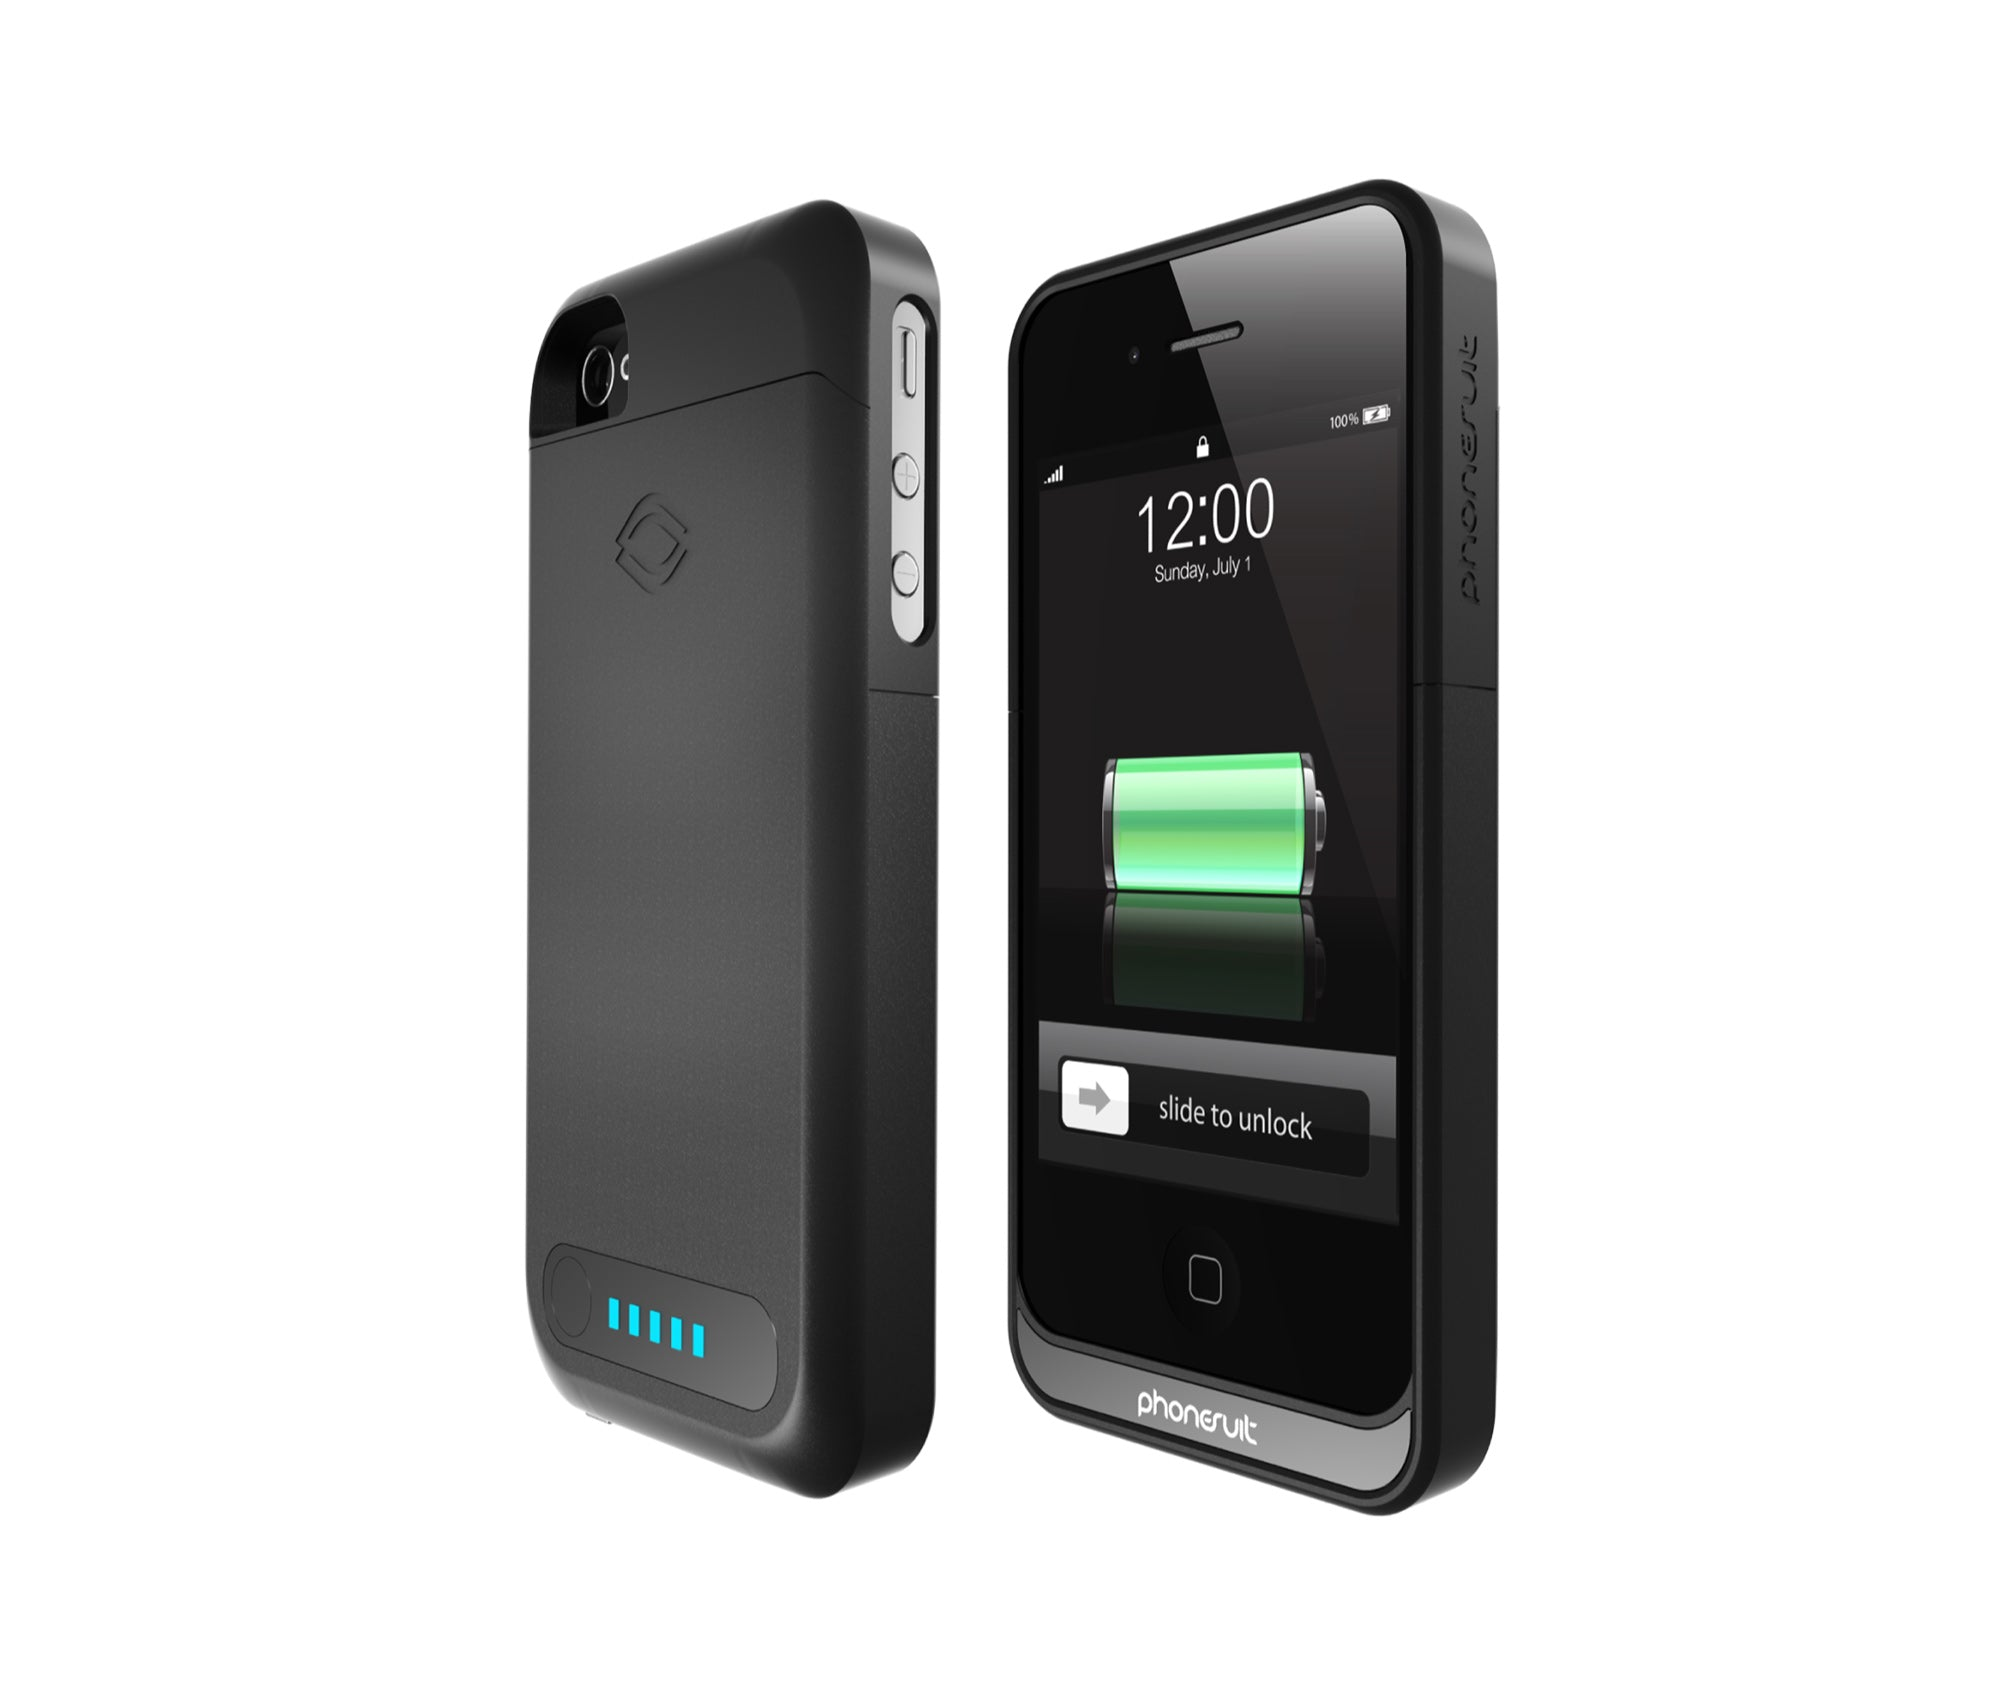 Iphone 4 4s Battery Case The Phonesuit Elite Baterai Ipod Touch 5 Charge Se 5s And Sync W Itunes All At Same Time Pass Through Charging Allows To Both Simultaneously